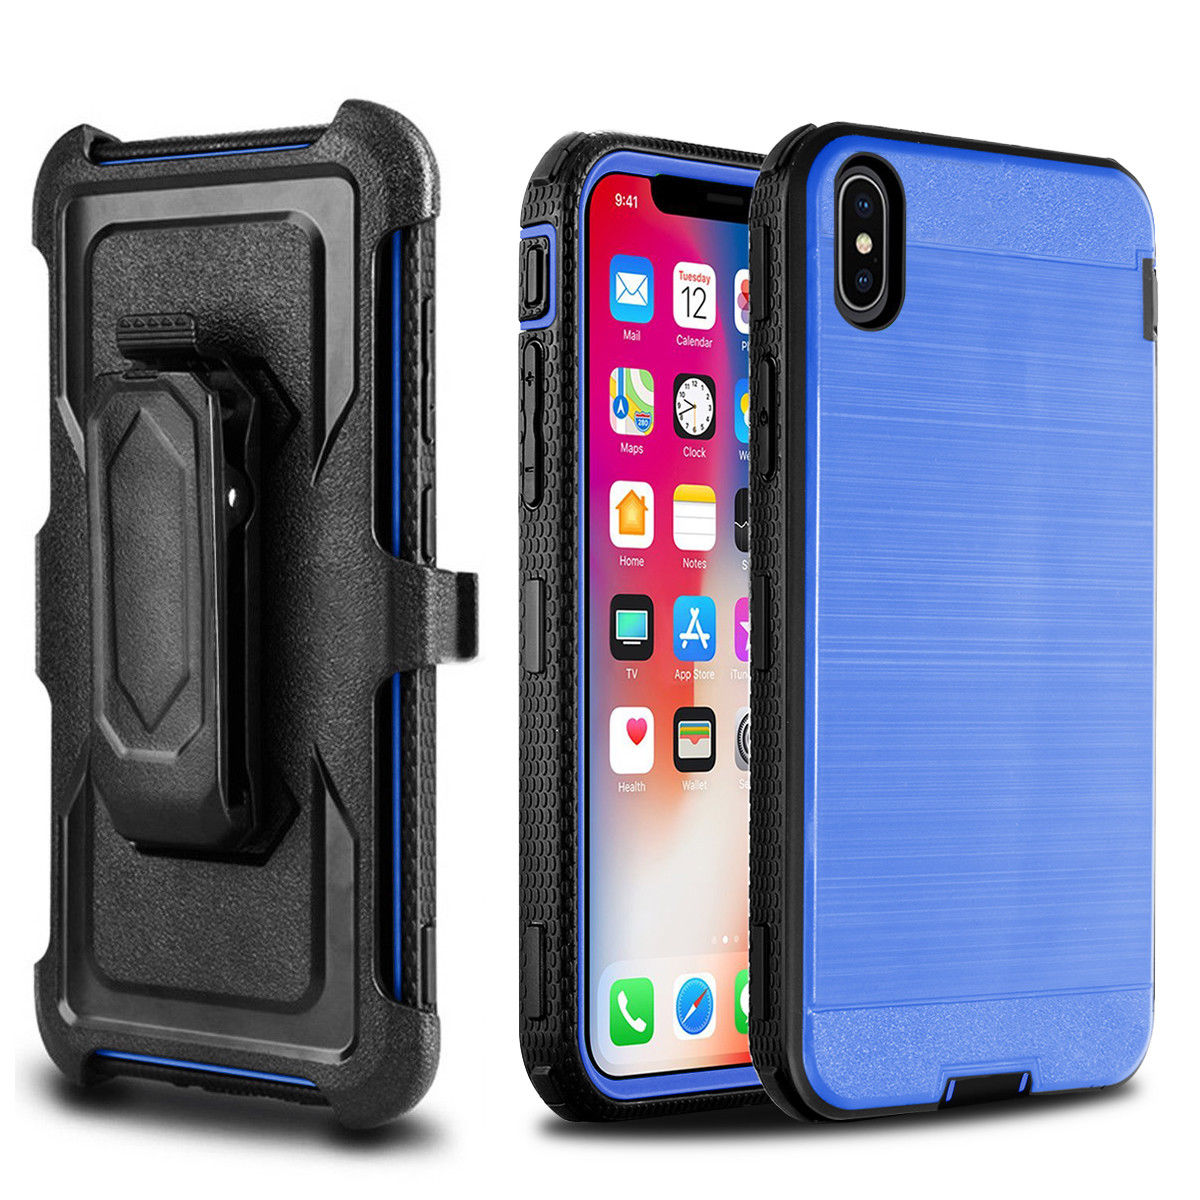 iPhone X XS Case, Mignova Belt Swivel Clip Full Body Protective Rugged Plastic Heavy Duty Armor Holster Defender Hybrid Case Cover with Kickstand for Apple iPhone X XS  (Black)